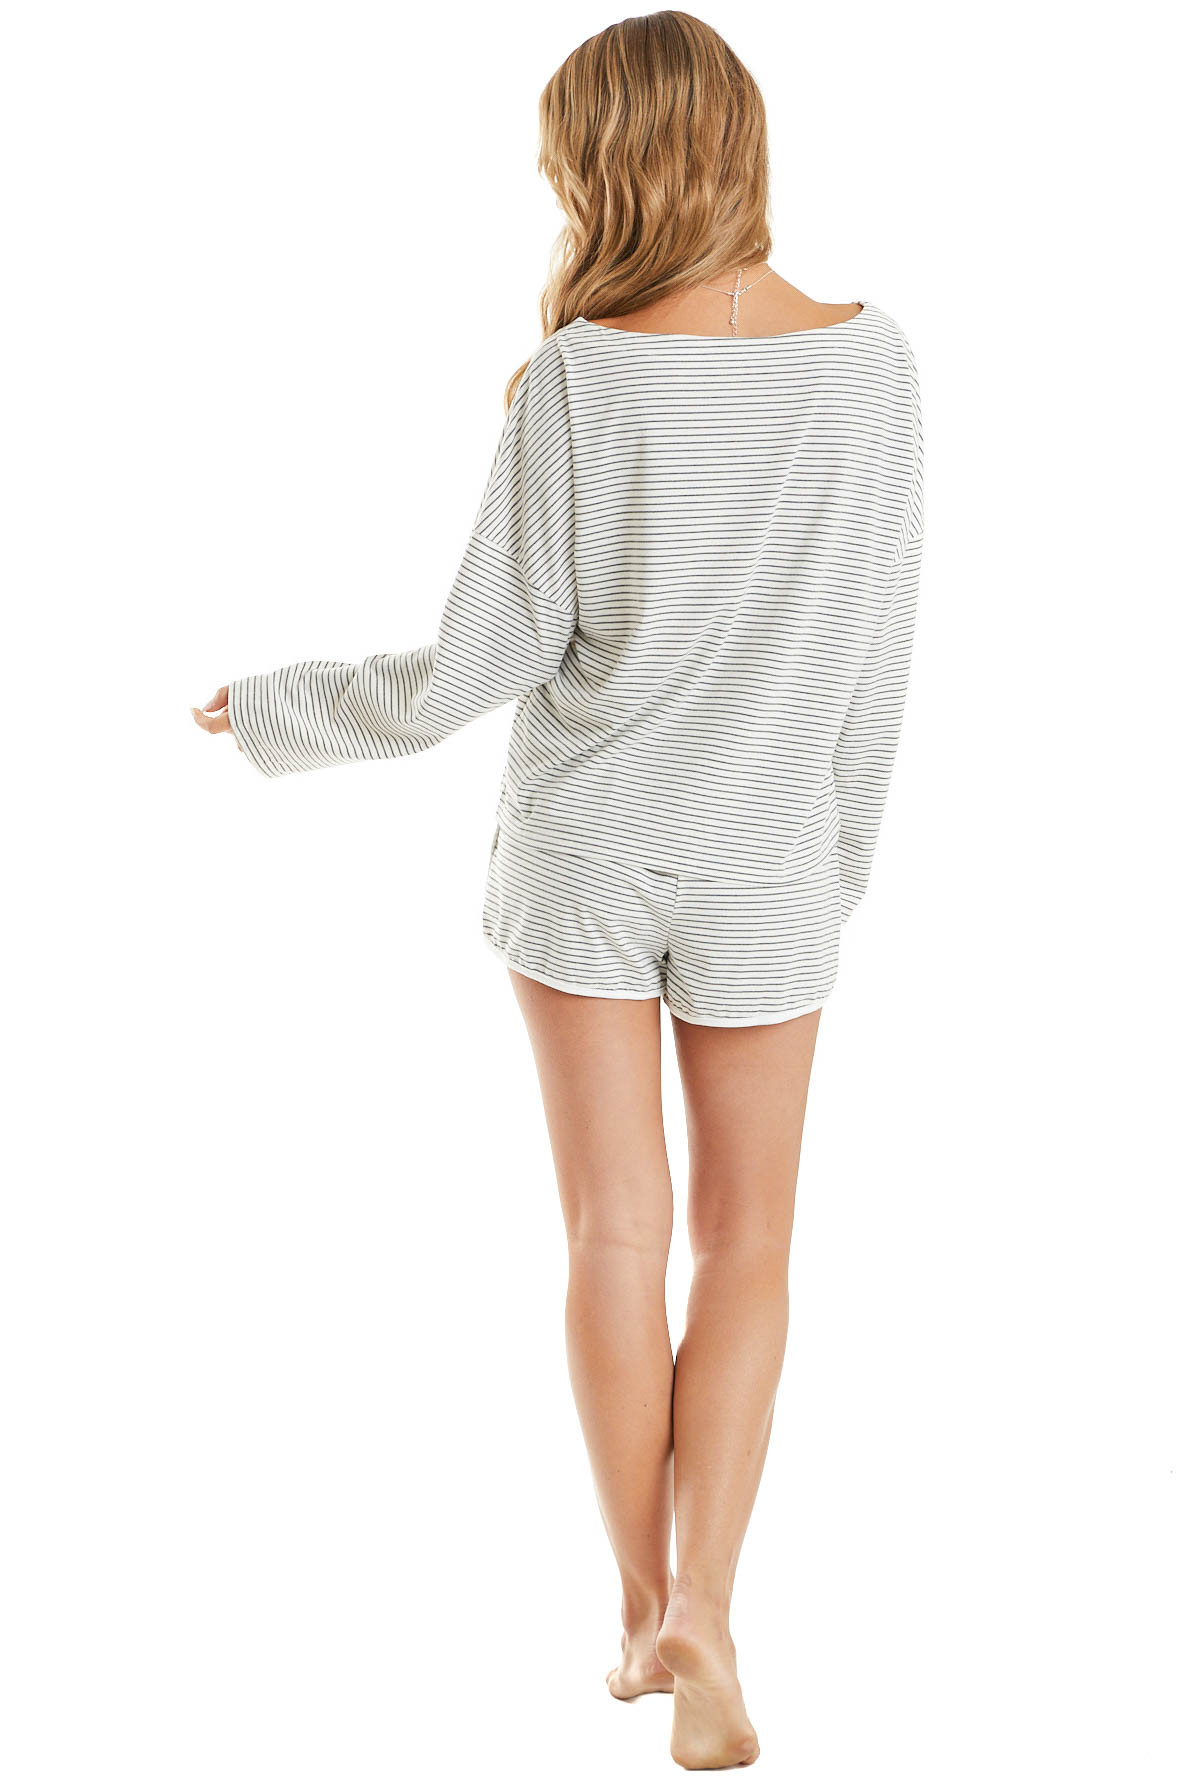 Charcoal Striped Long Sleeve Top and Shorts Loungewear Set